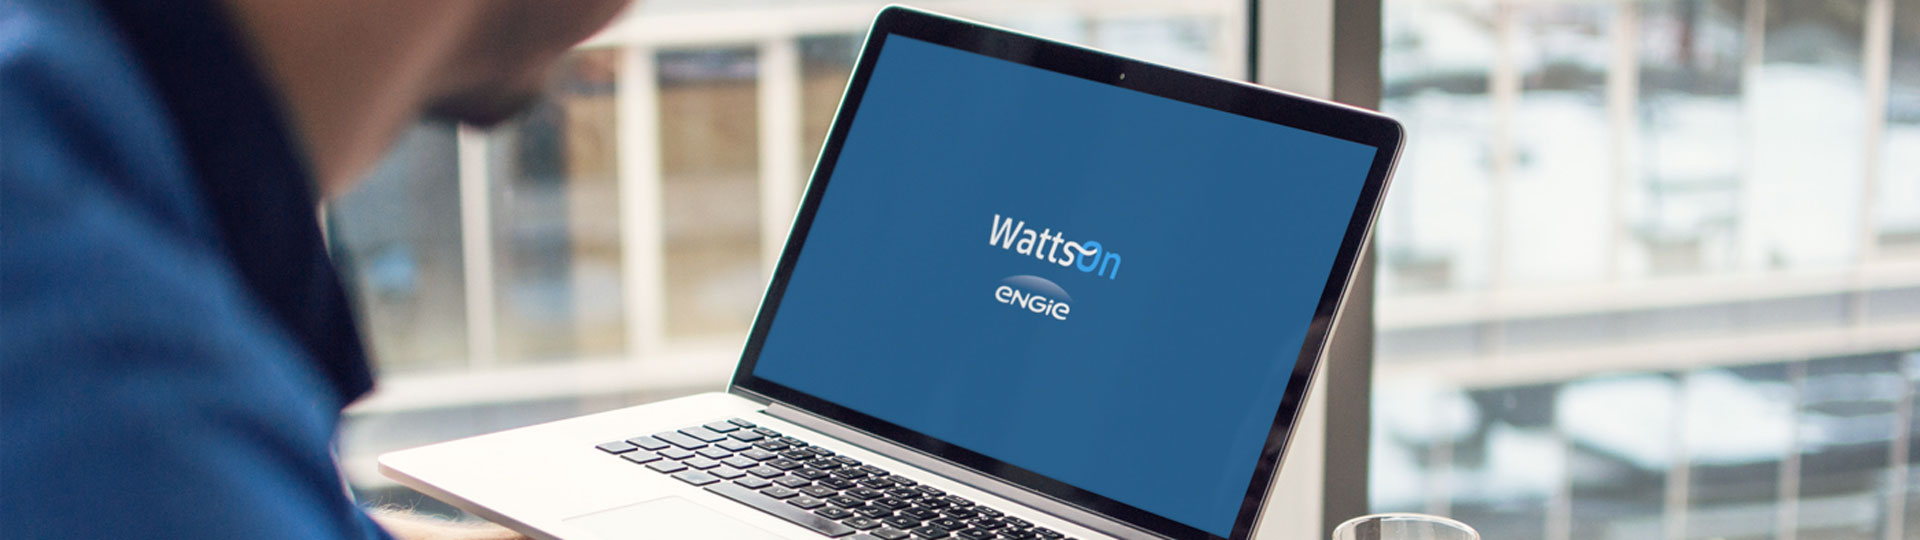 WattsOn is an application for energy supply contract management.